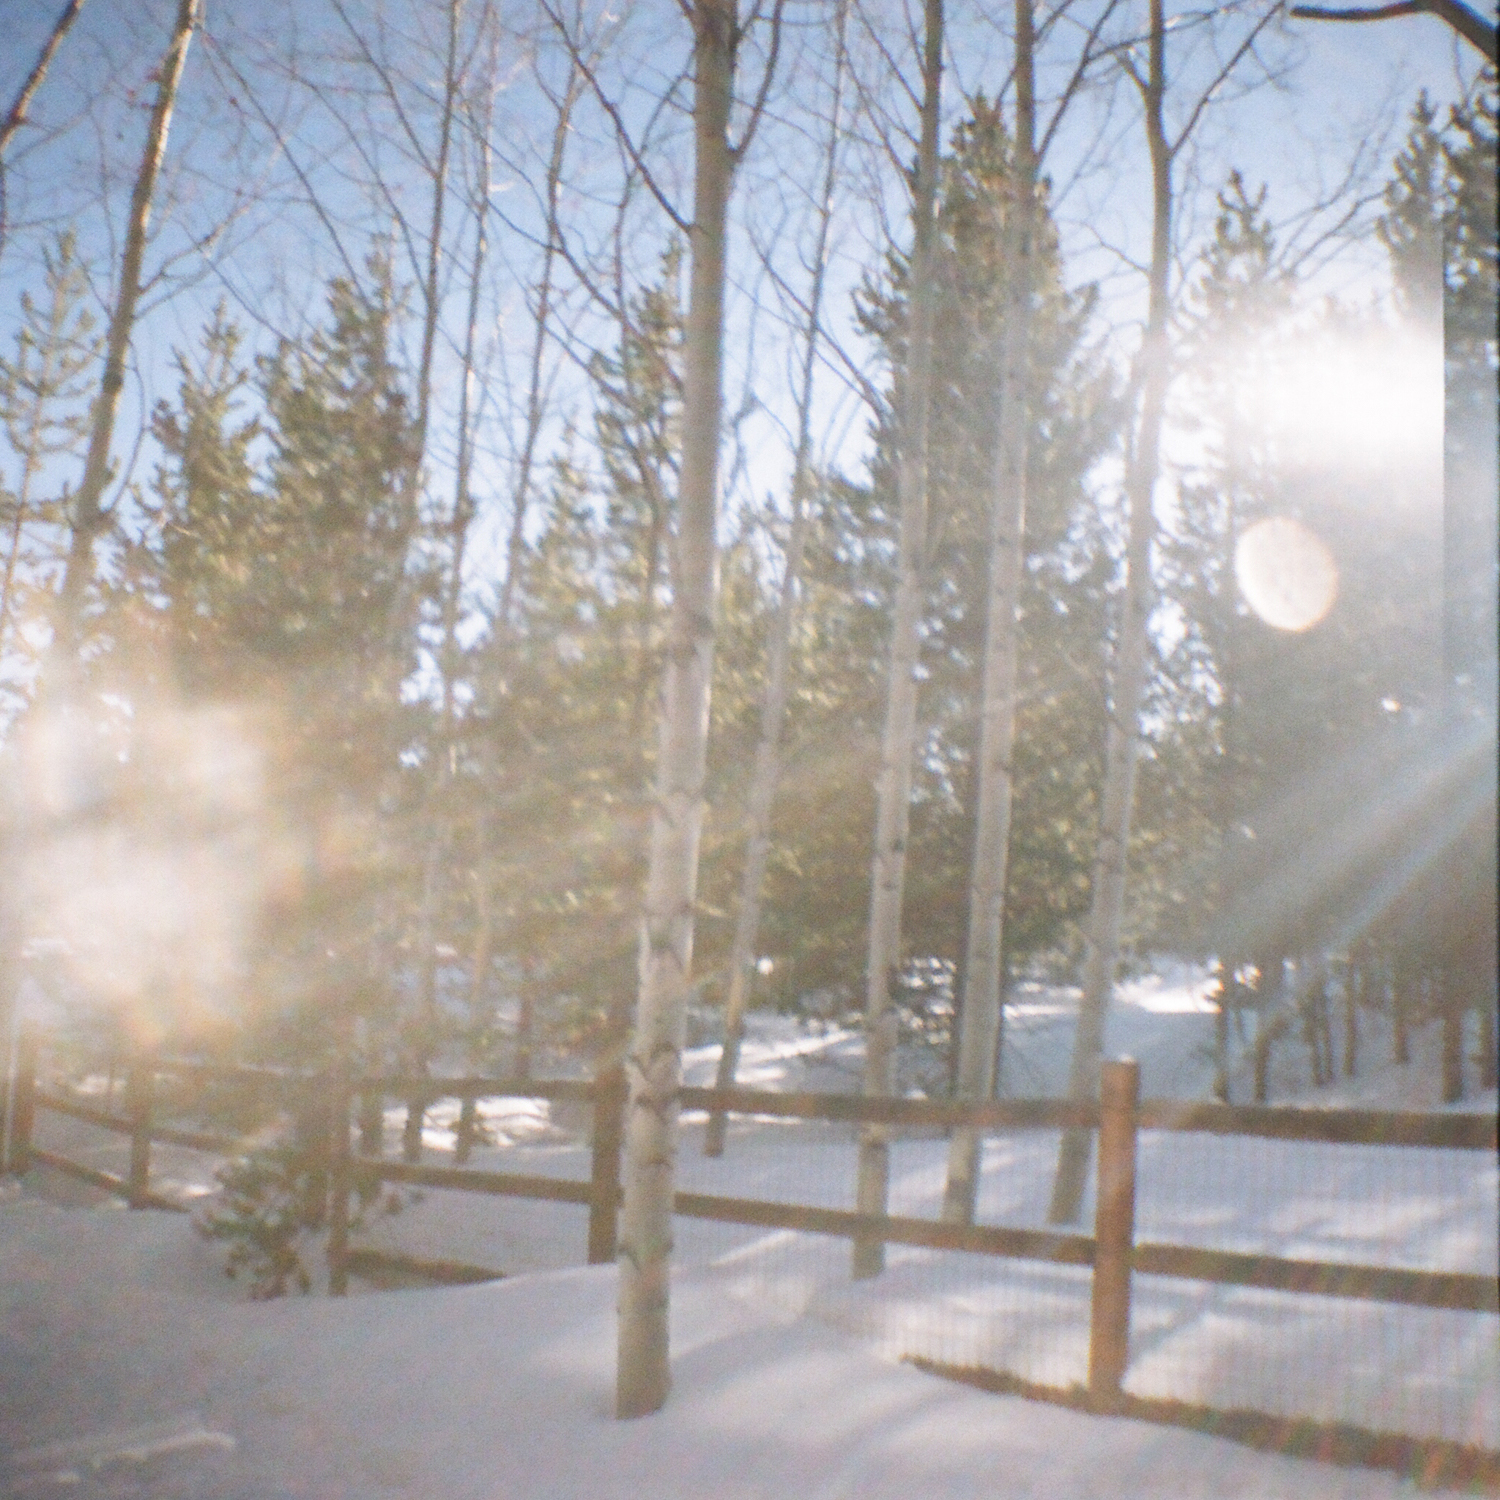 lens flare in the snow